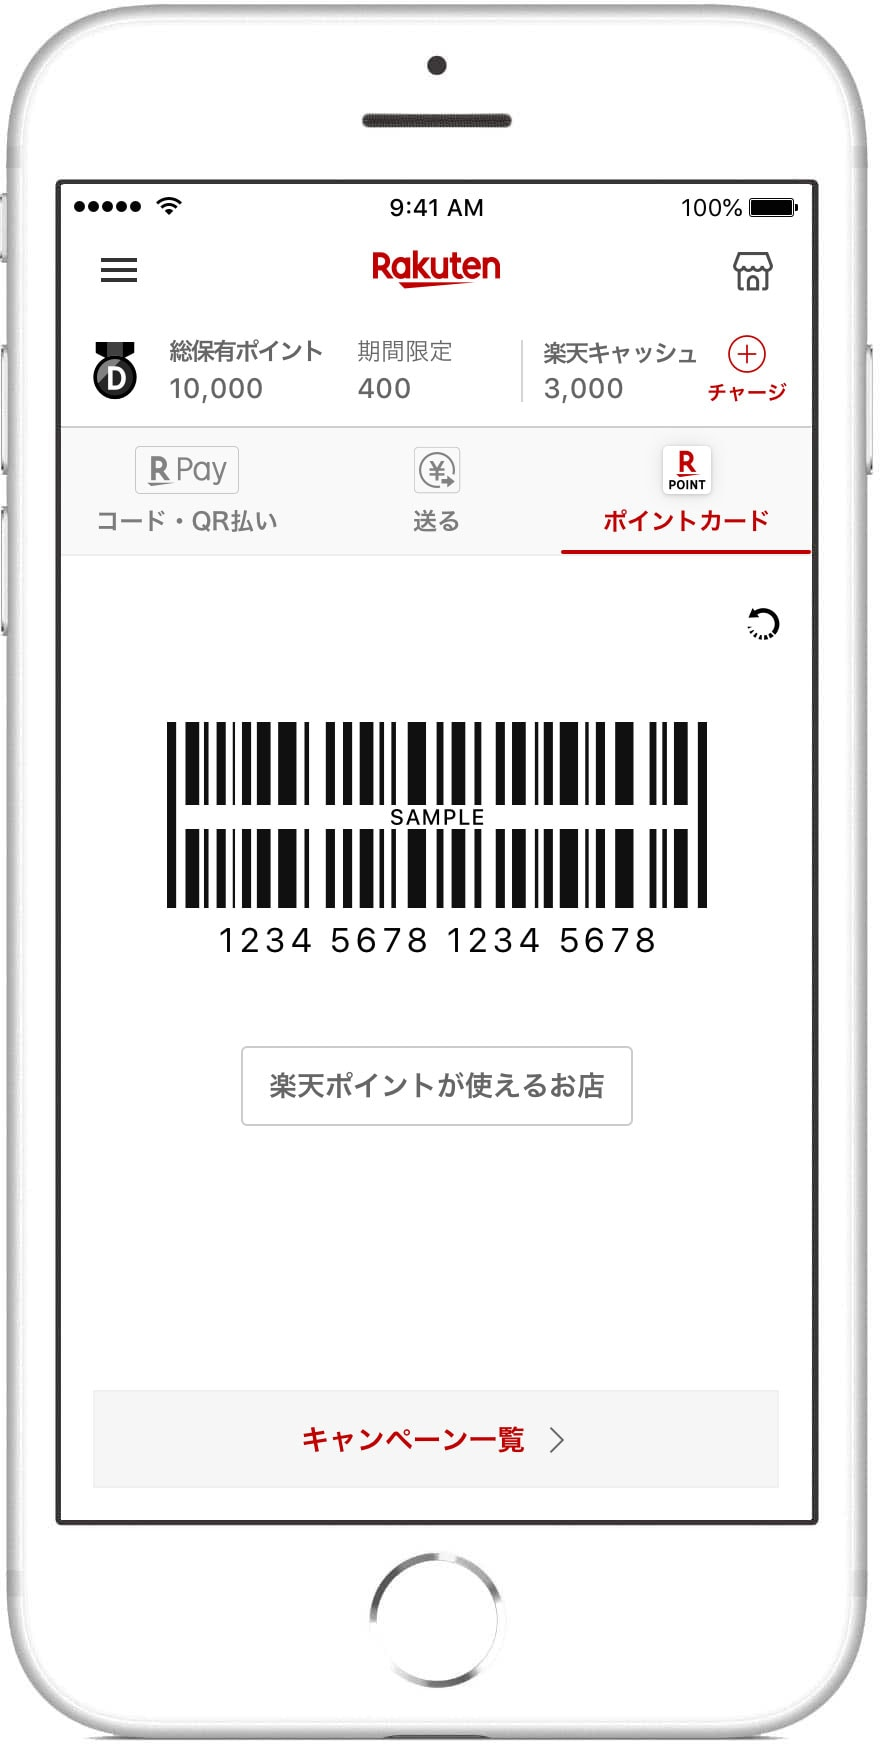 https://finance.jp.rakuten-static.com/rpay/img/1/guide/points/img_point_tameru.jpg?v=20190628